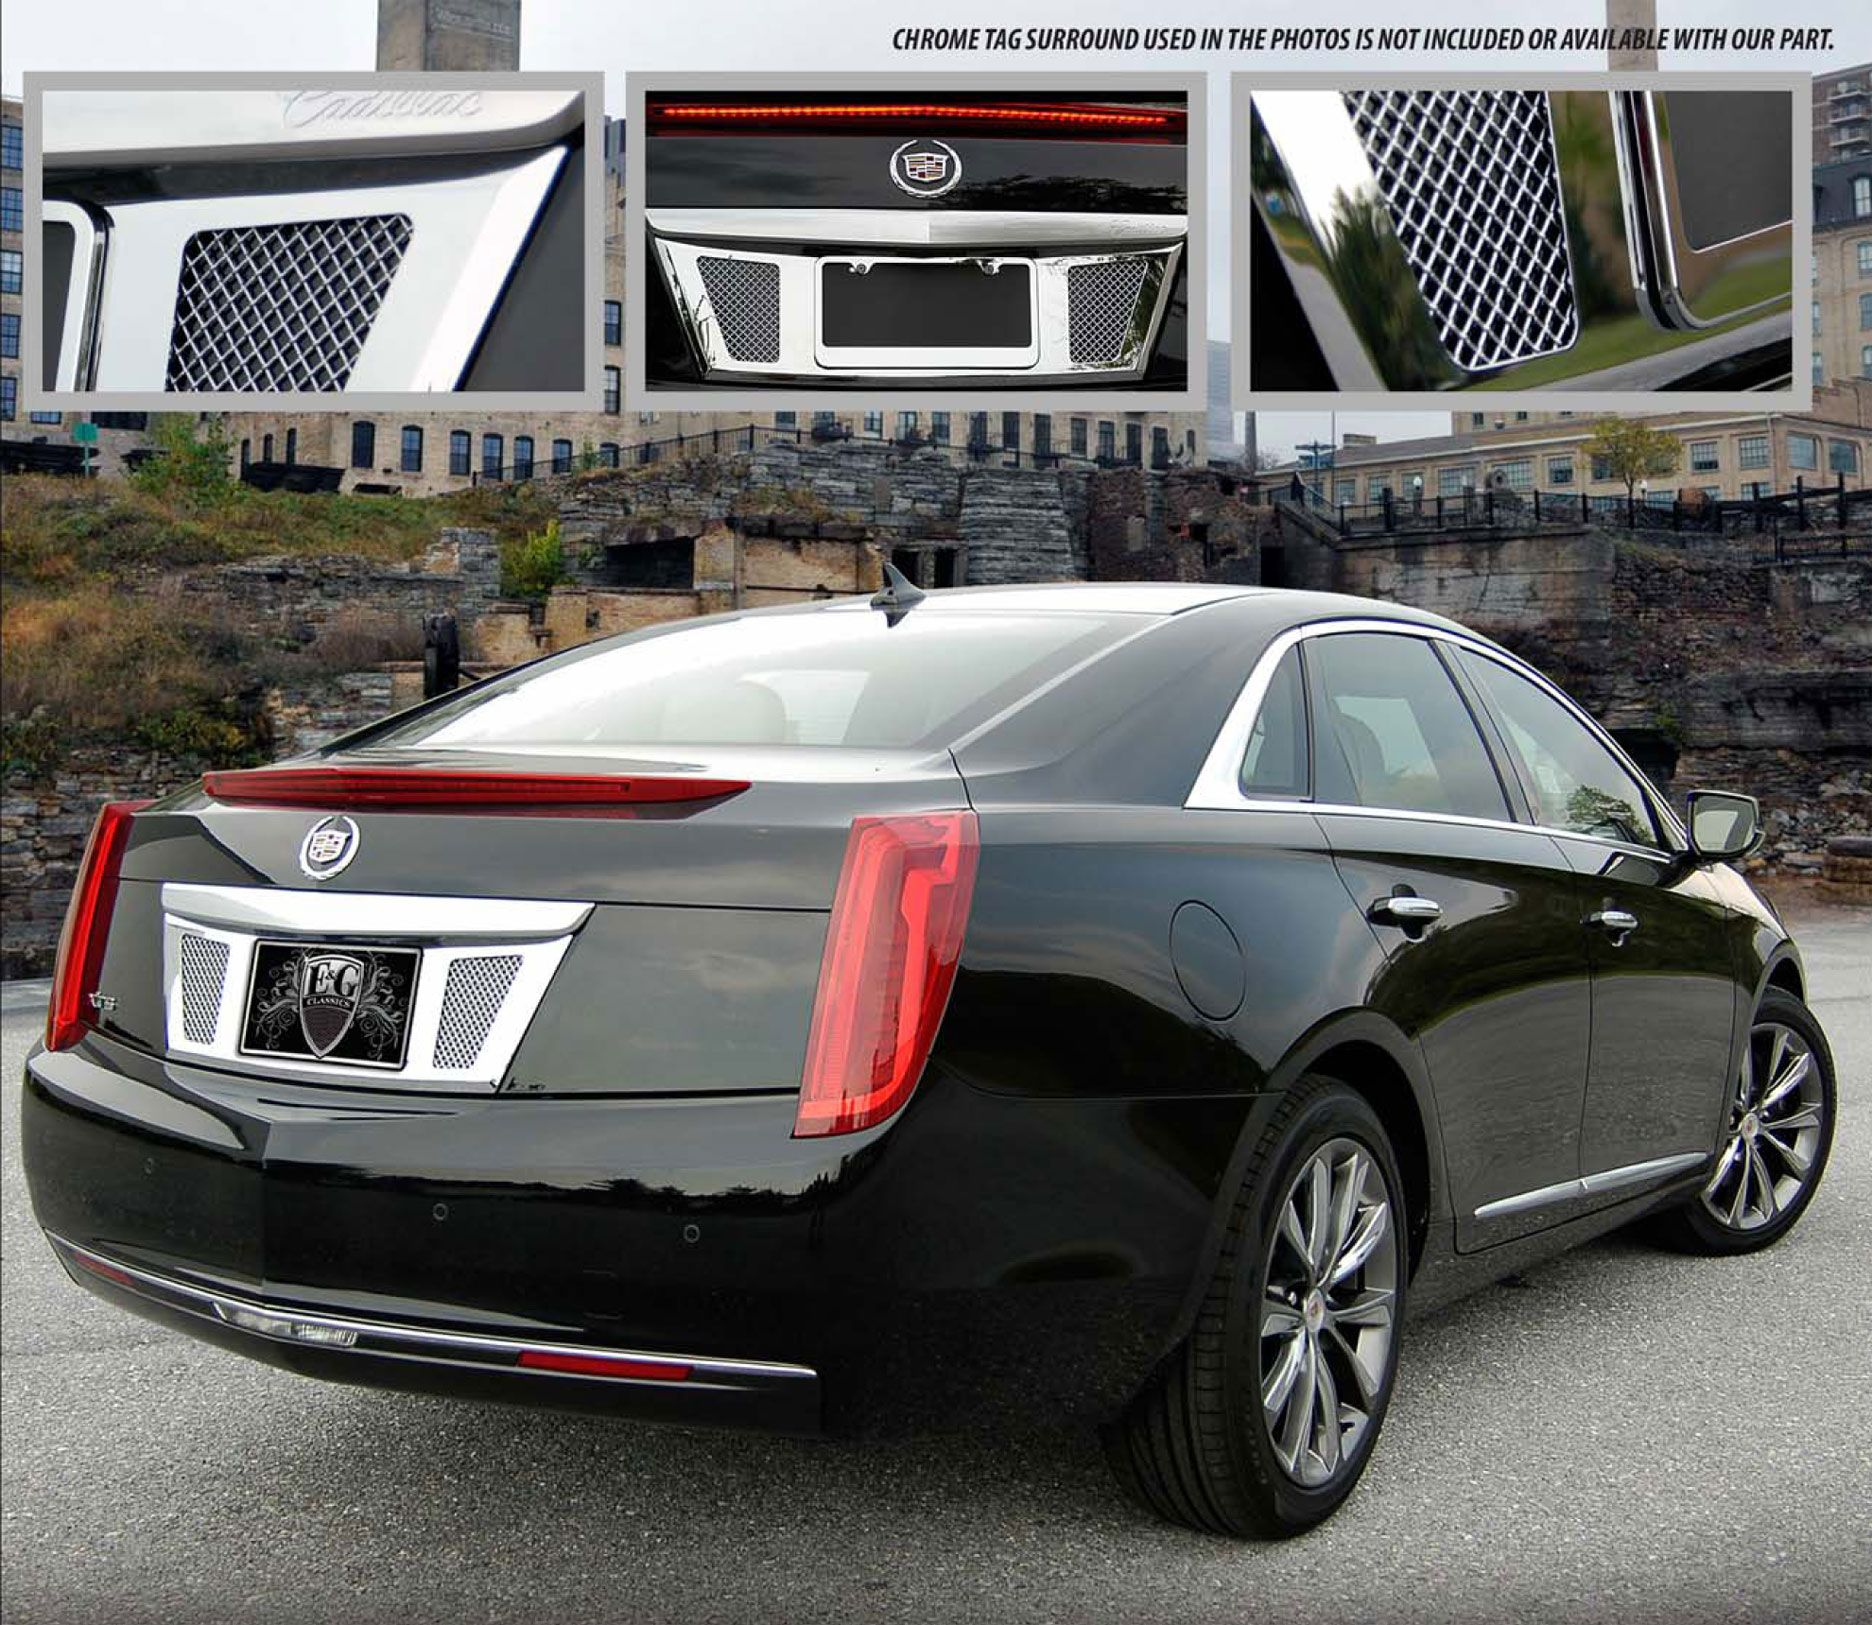 2013 Cadillac XTS Classic Chrome Fine Mesh Style Rear License Tag Surround. Call for part number: 1001-0710-13.